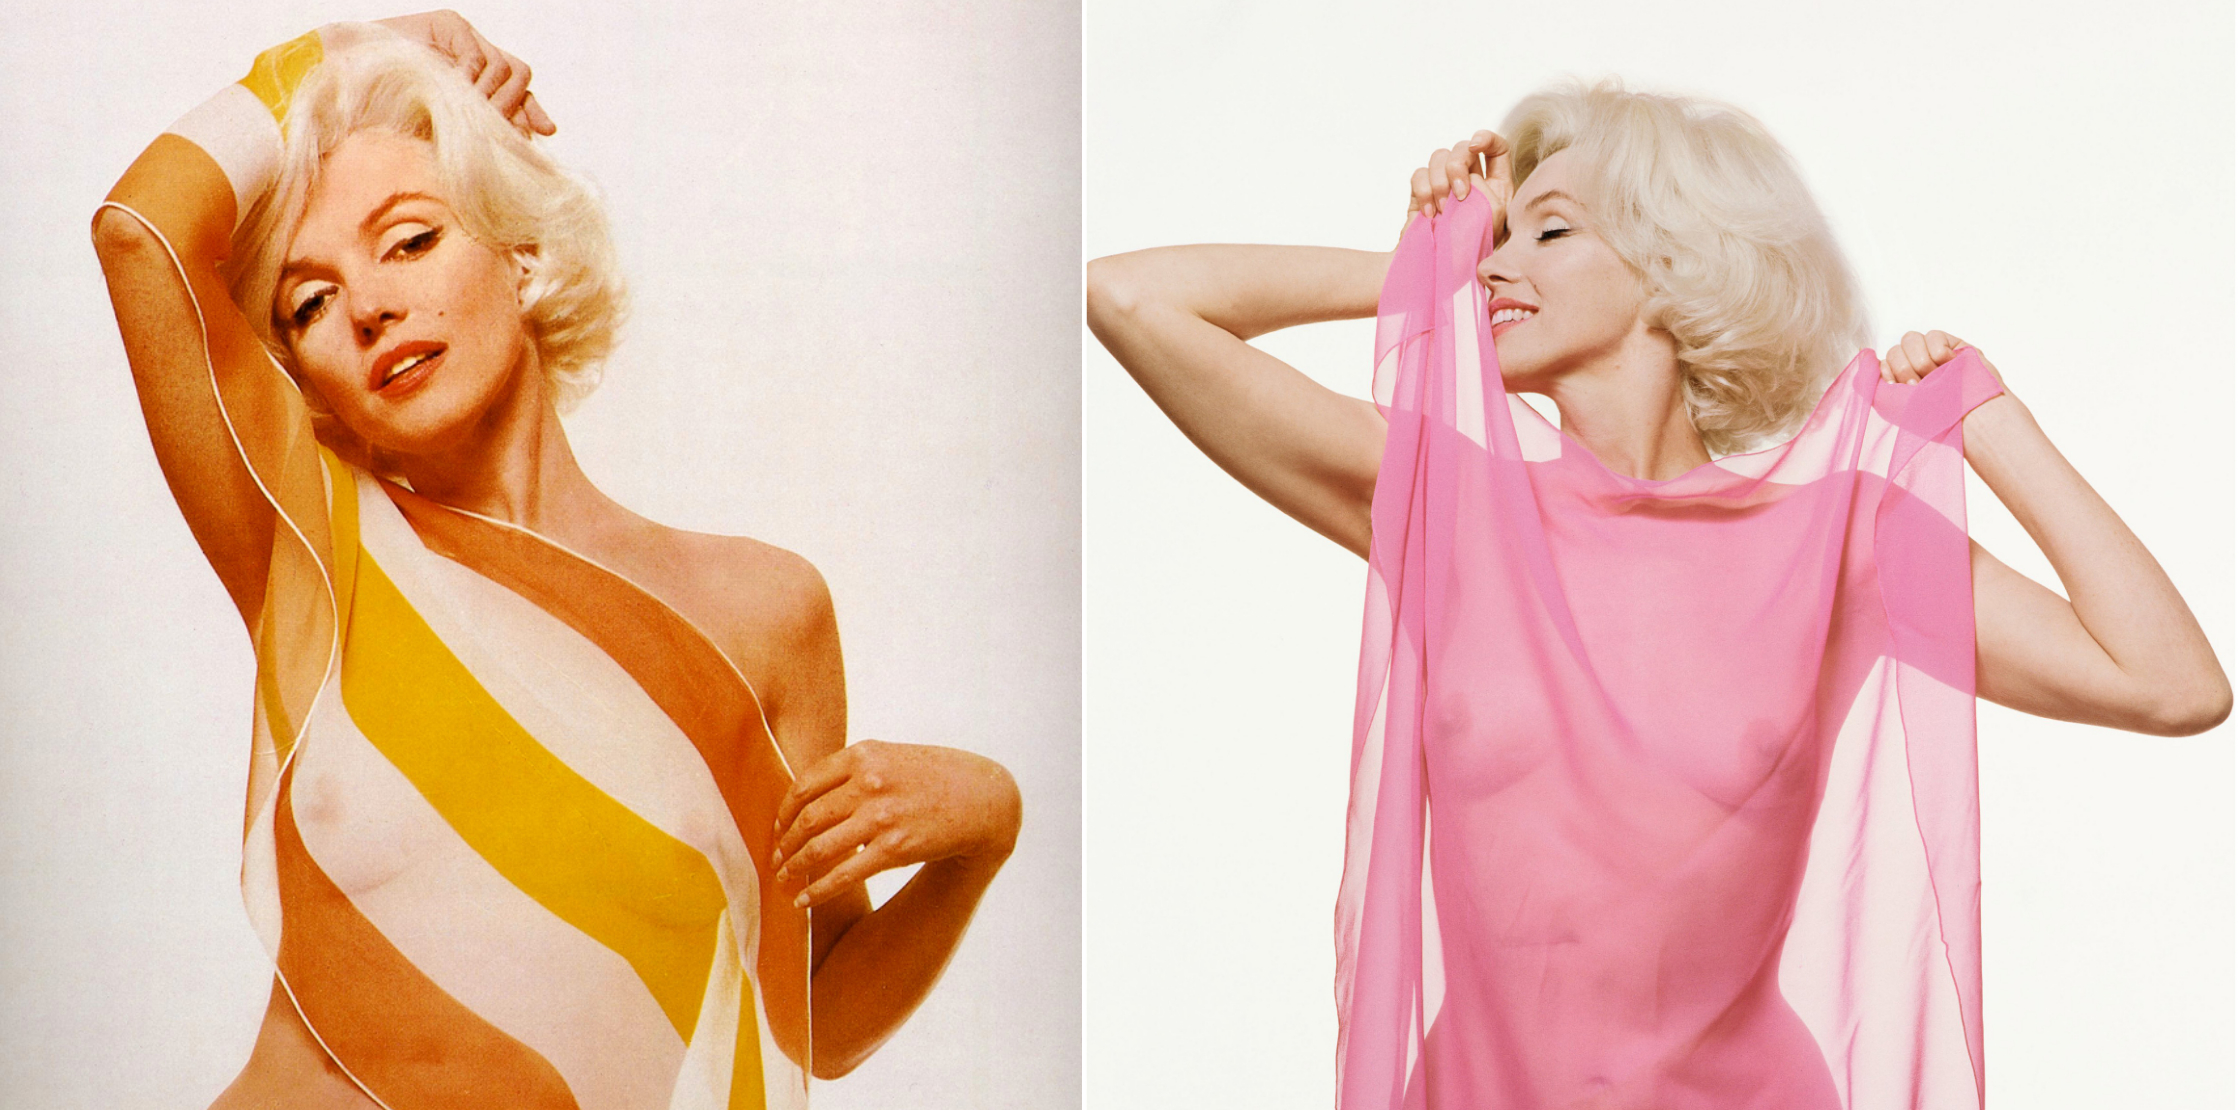 What's even more amazing is that iconic photographer Bert Stern took both  series of photographs, the original 1962 set, and Lohan's 2008 set.